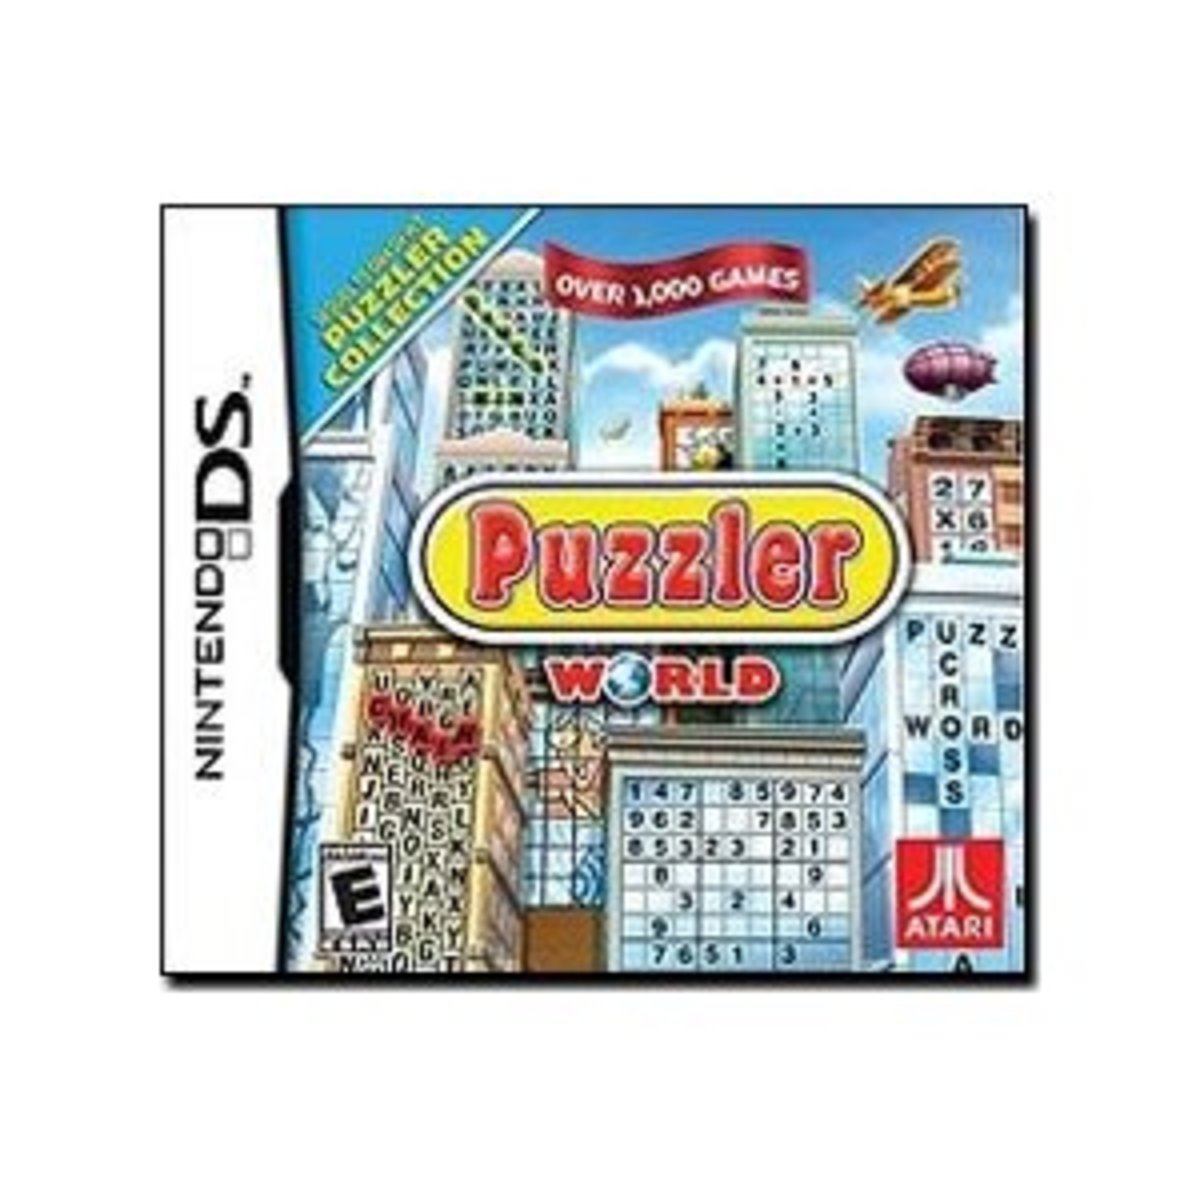 Puzzler World DSi XL Game